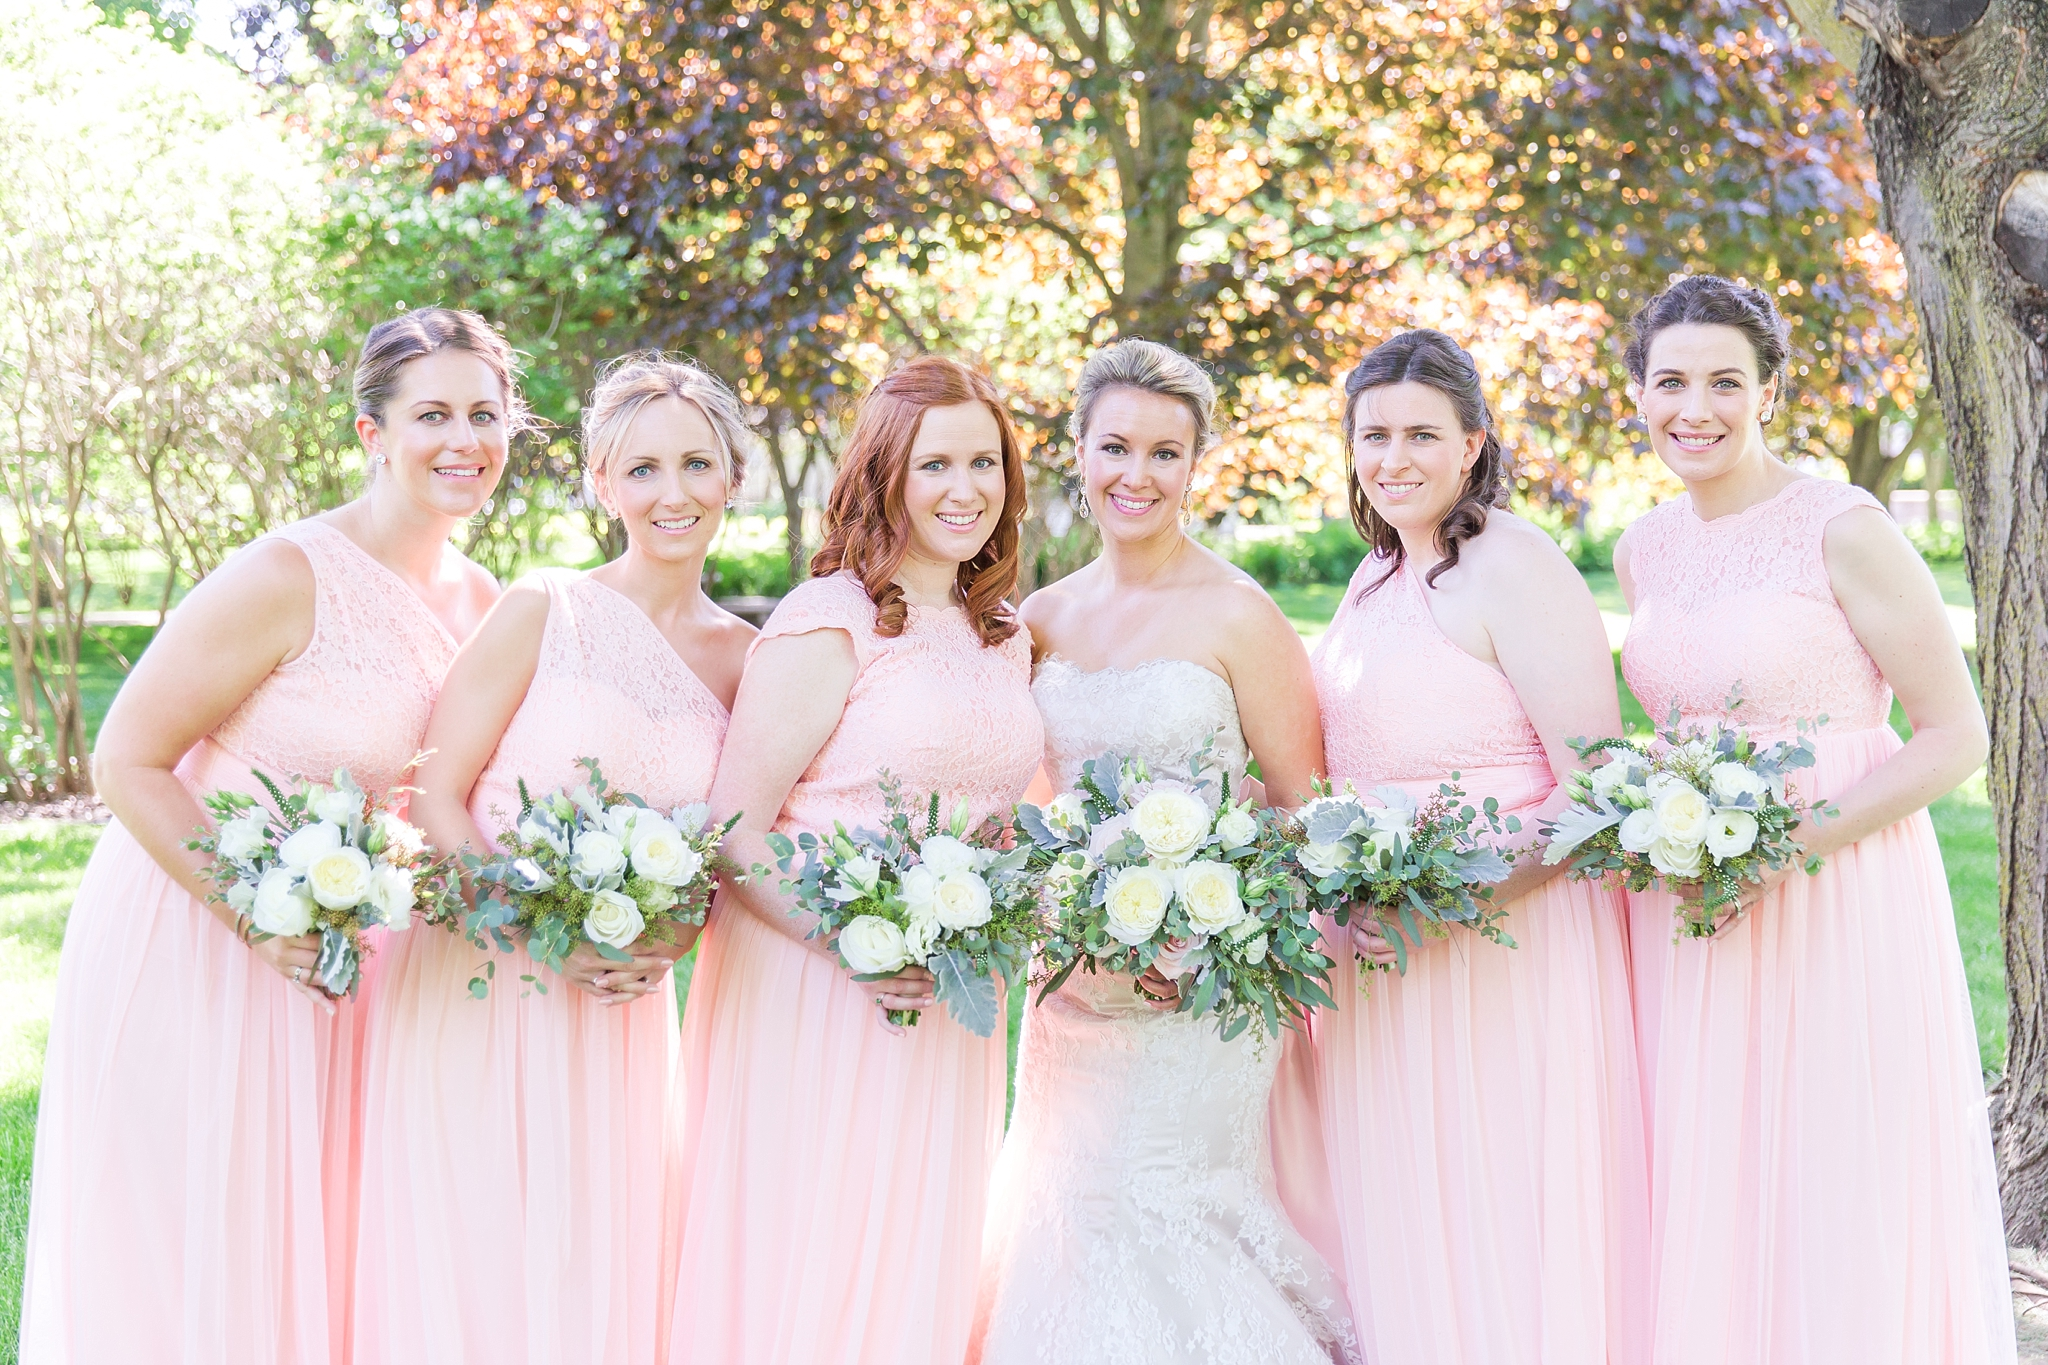 fun-candid-laid-back-wedding-photos-at-wellers-carriage-house-in-saline-michigan-and-at-the-eagle-crest-golf-resort-by-courtney-carolyn-photography_0056.jpg